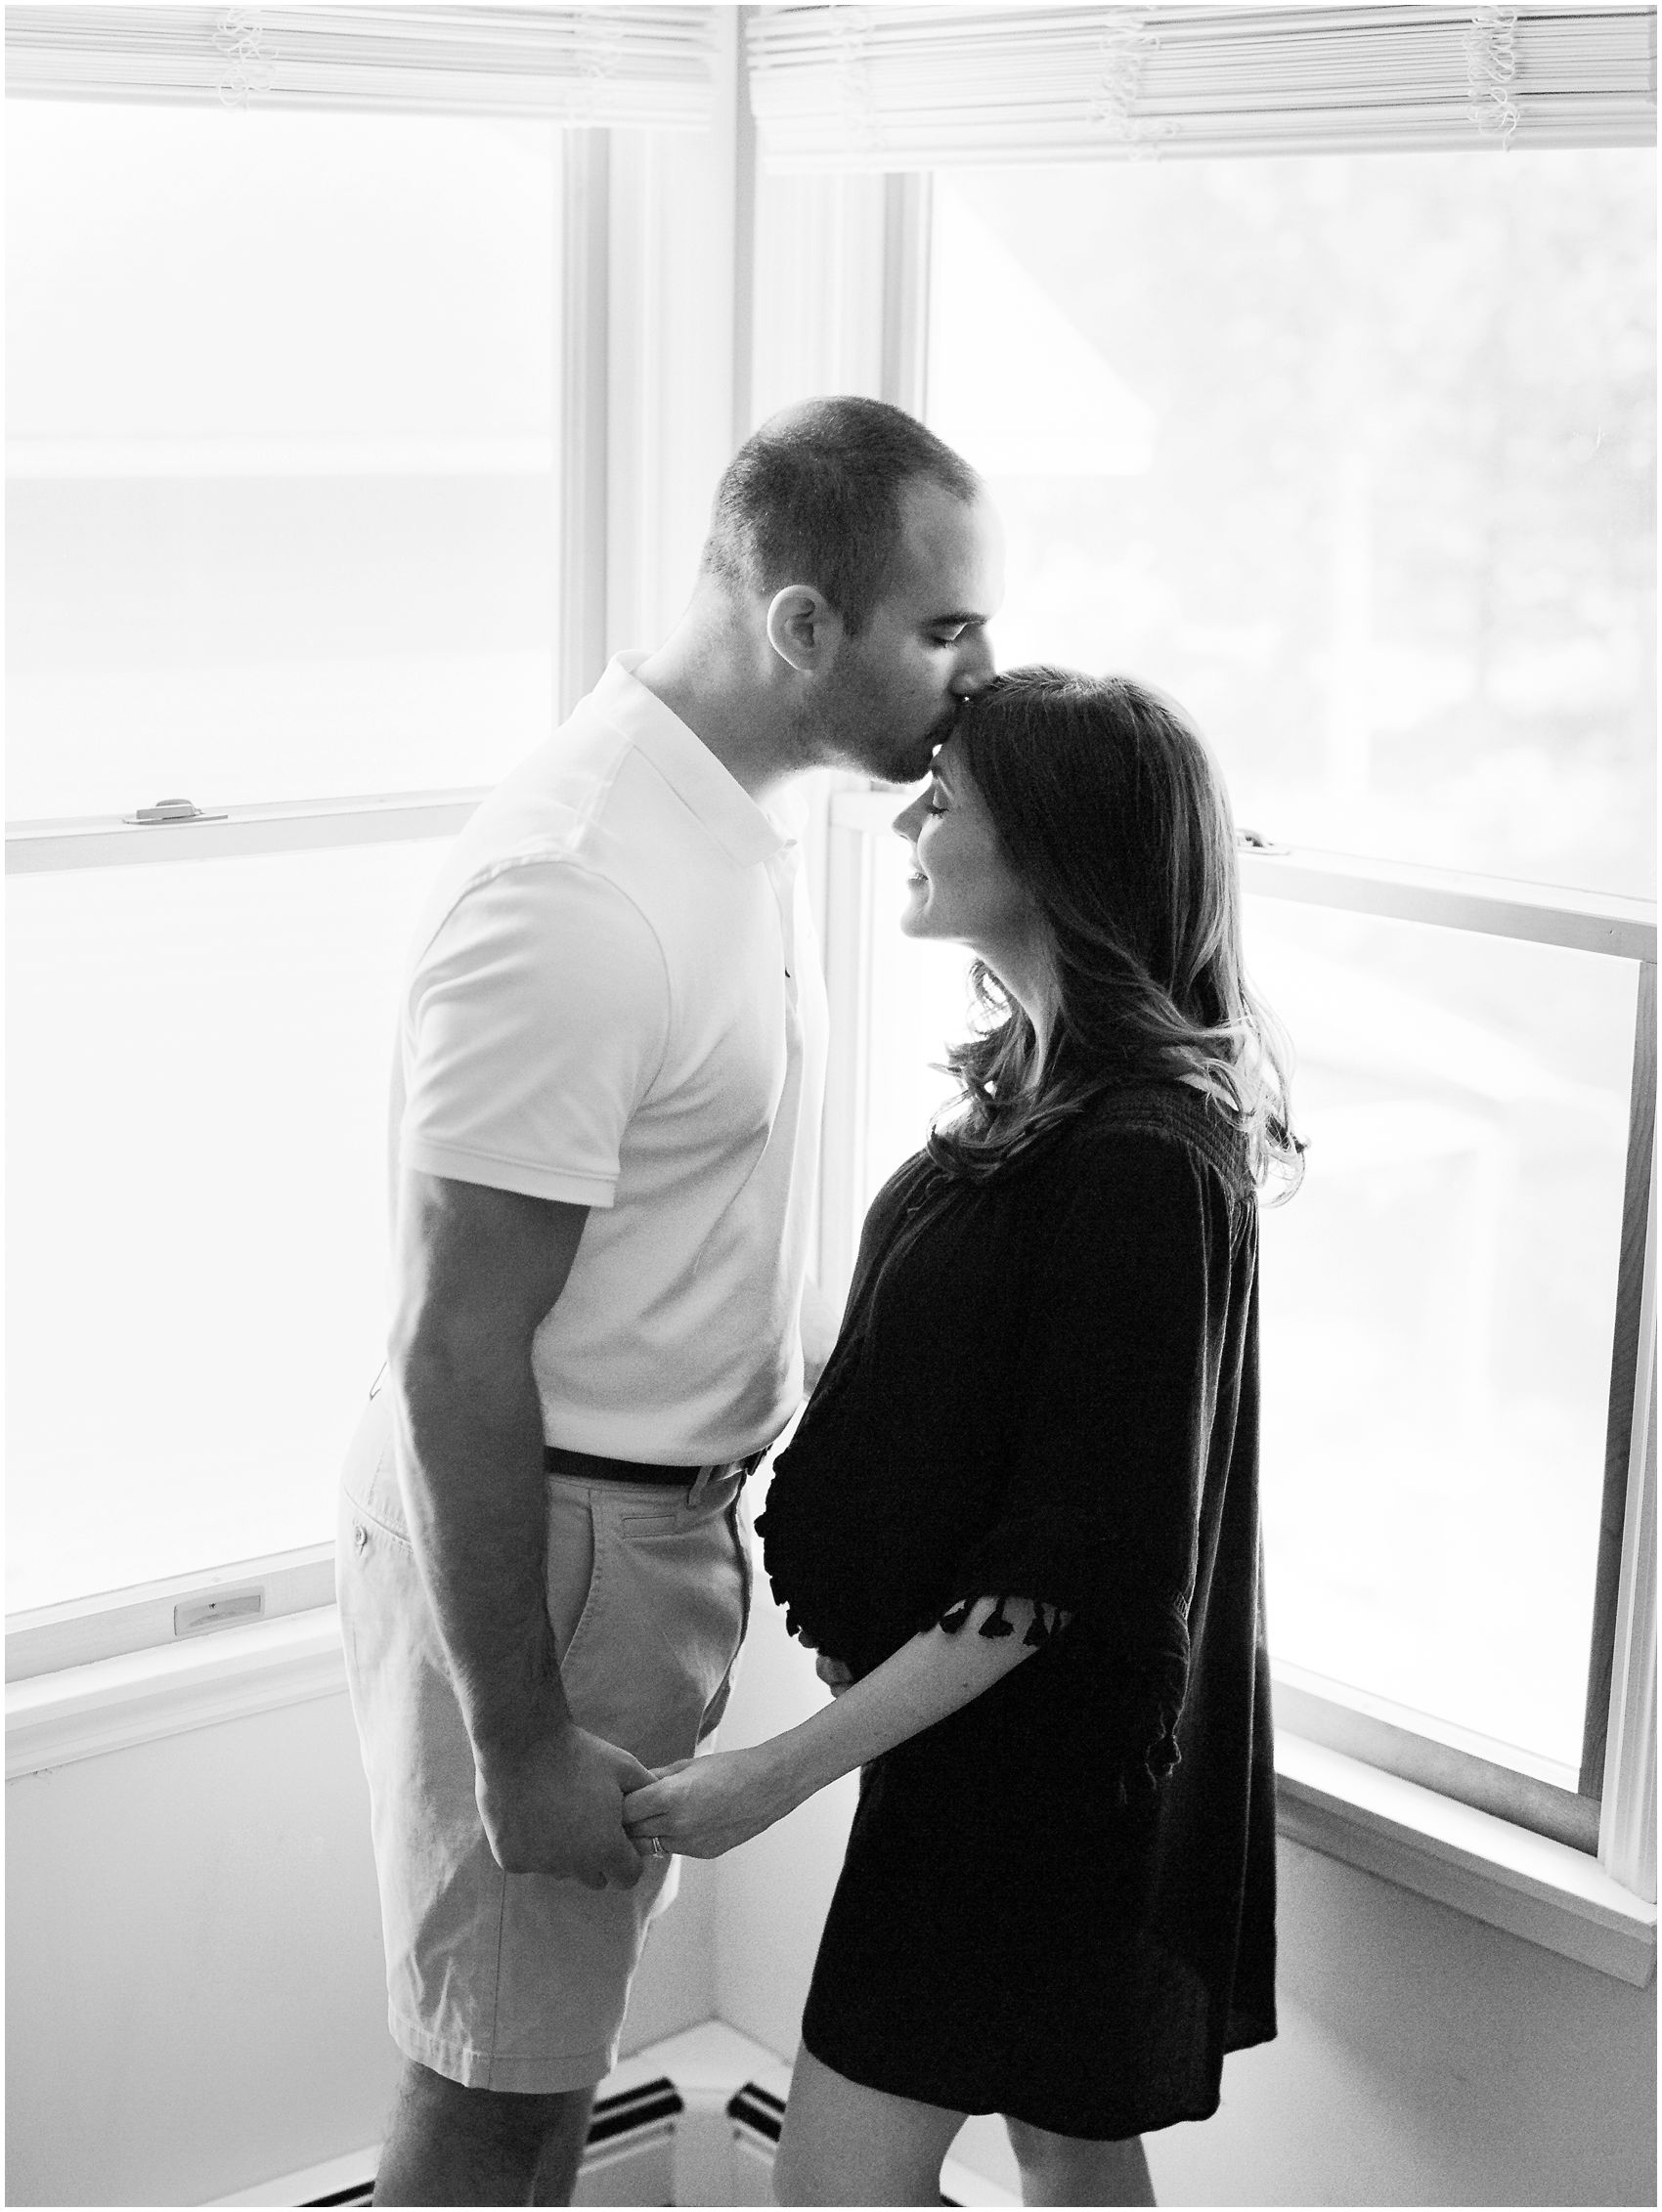 intimate black and white portrait of a pregnant couple at home during maternity photoshoot